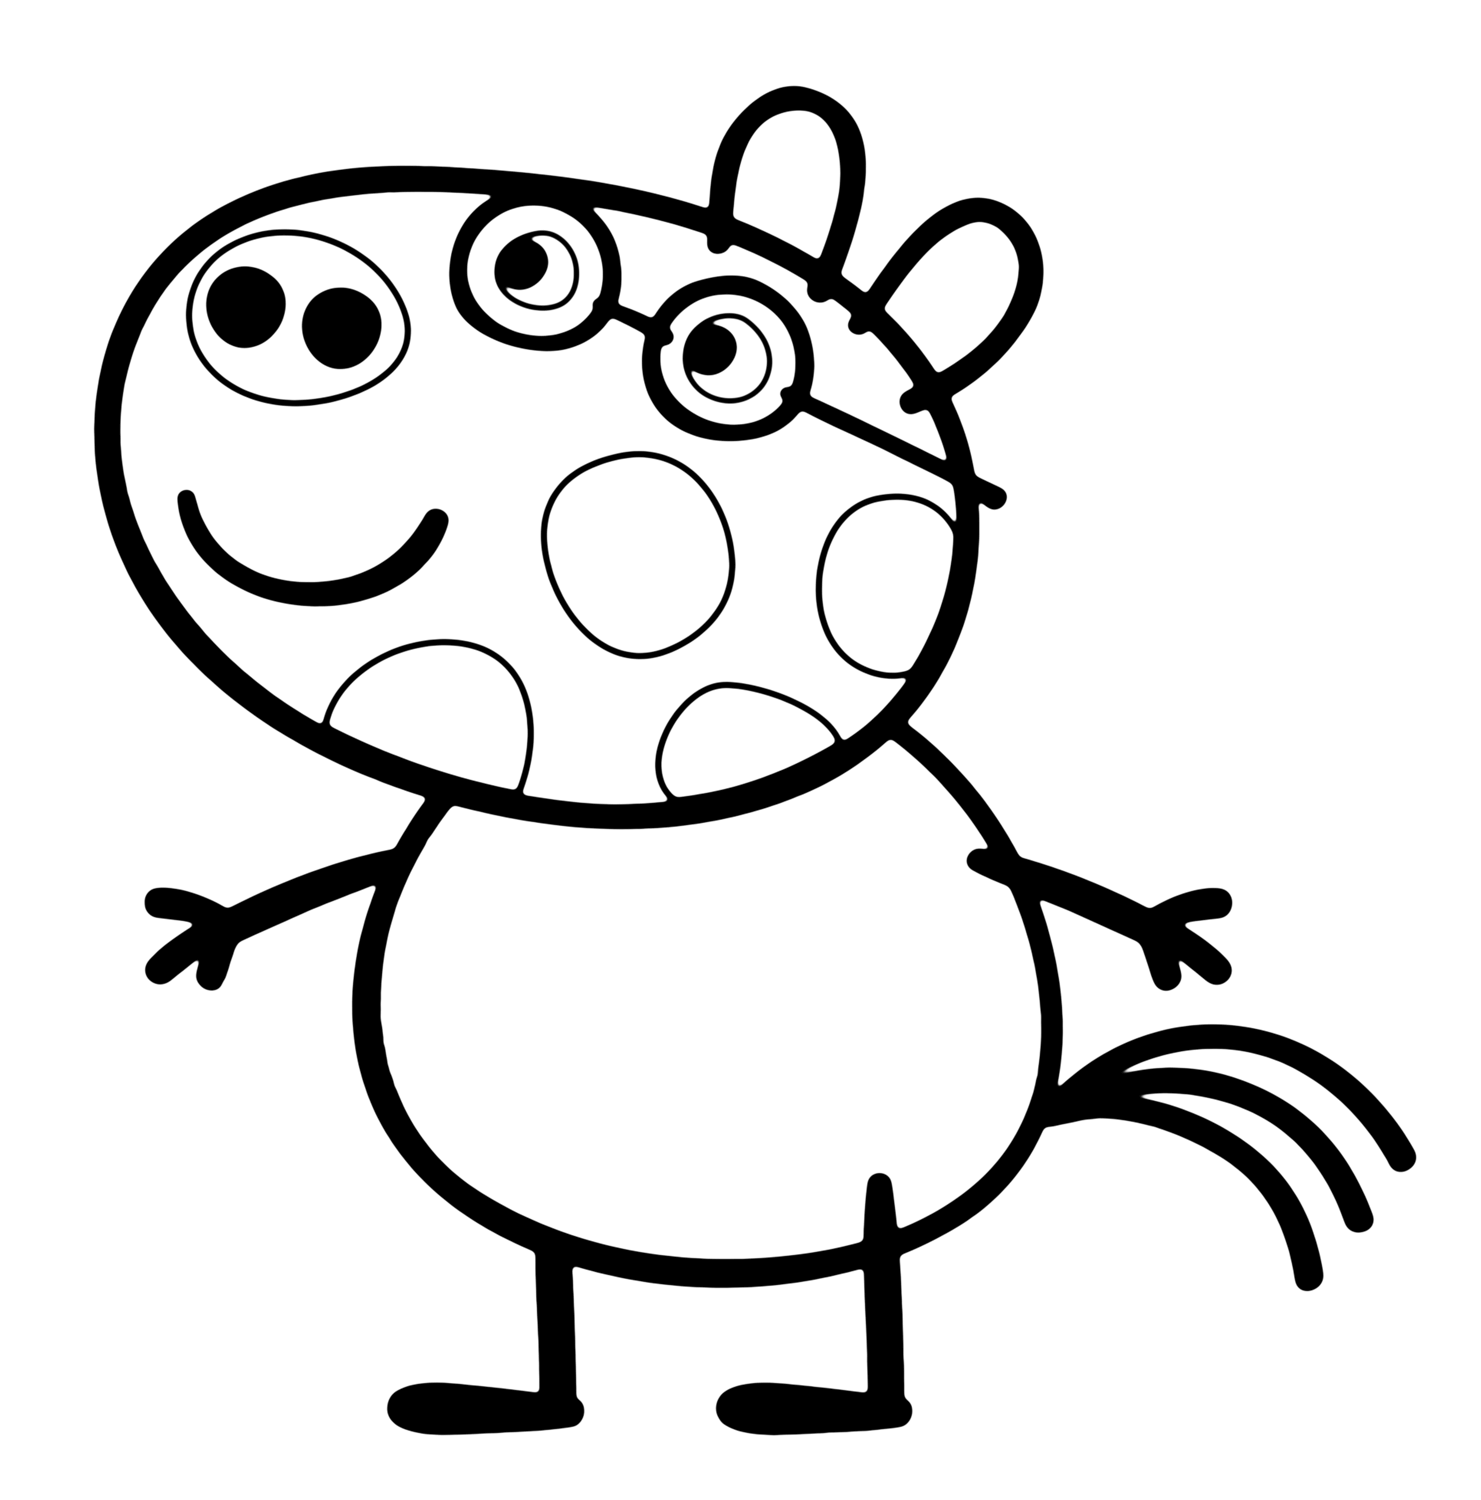 peppa pig coloring in peppa pig coloring pages coloring pages pig peppa in coloring